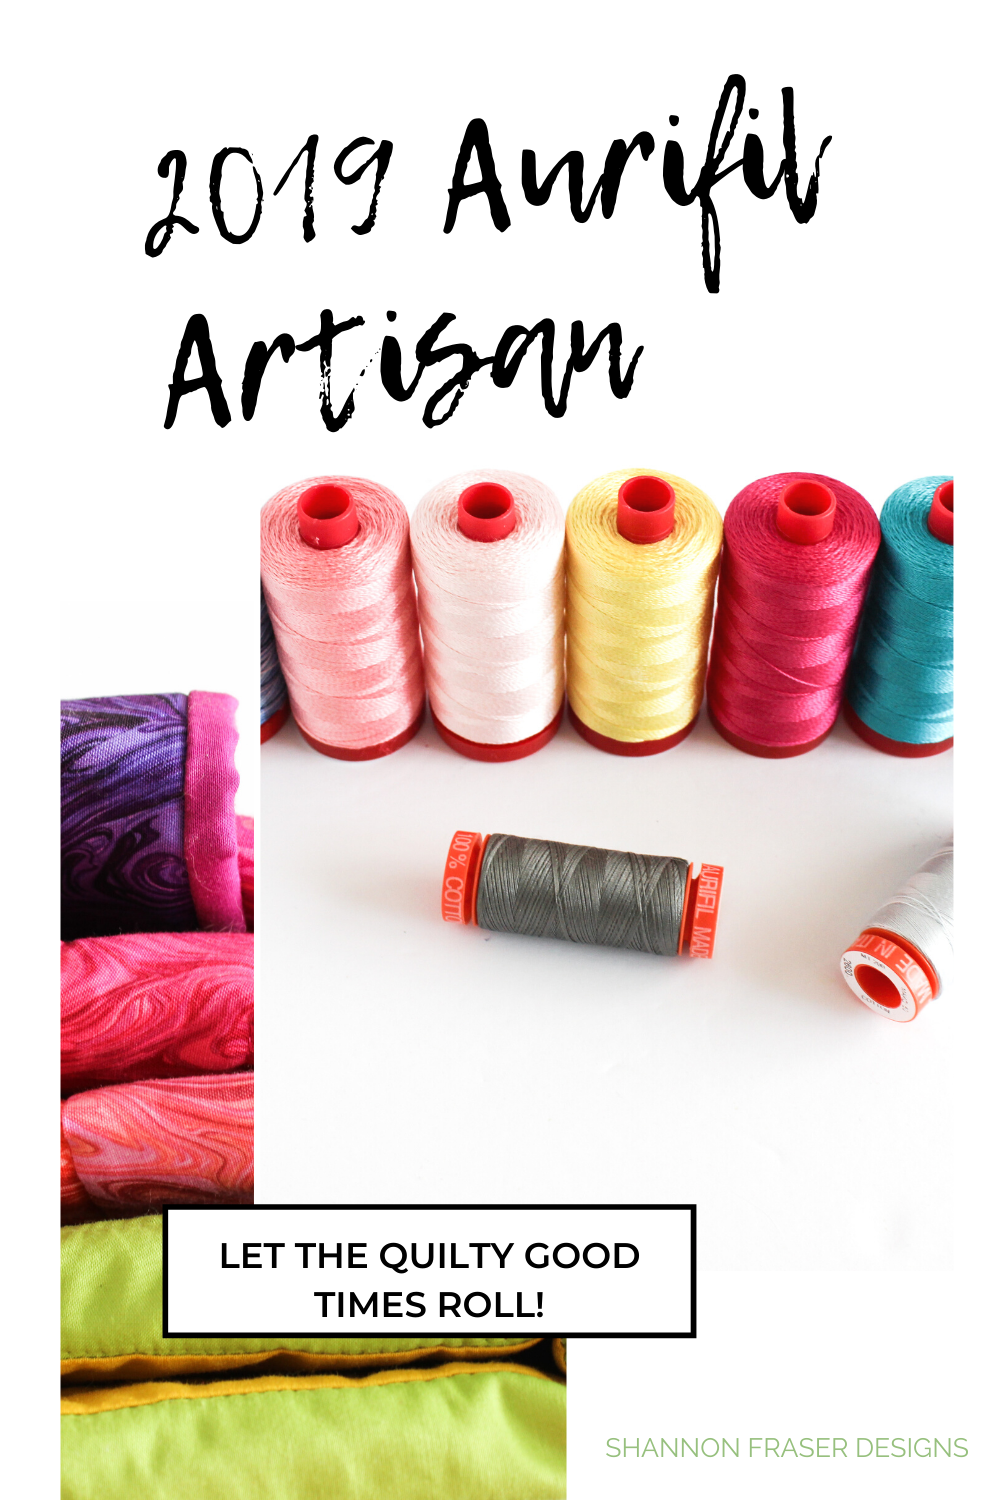 Aurifil thread spools in different colors | Why I love Aurifil Thread | Aurifil Artisan 2019 | Shannon Fraser Designs #aurifilthread